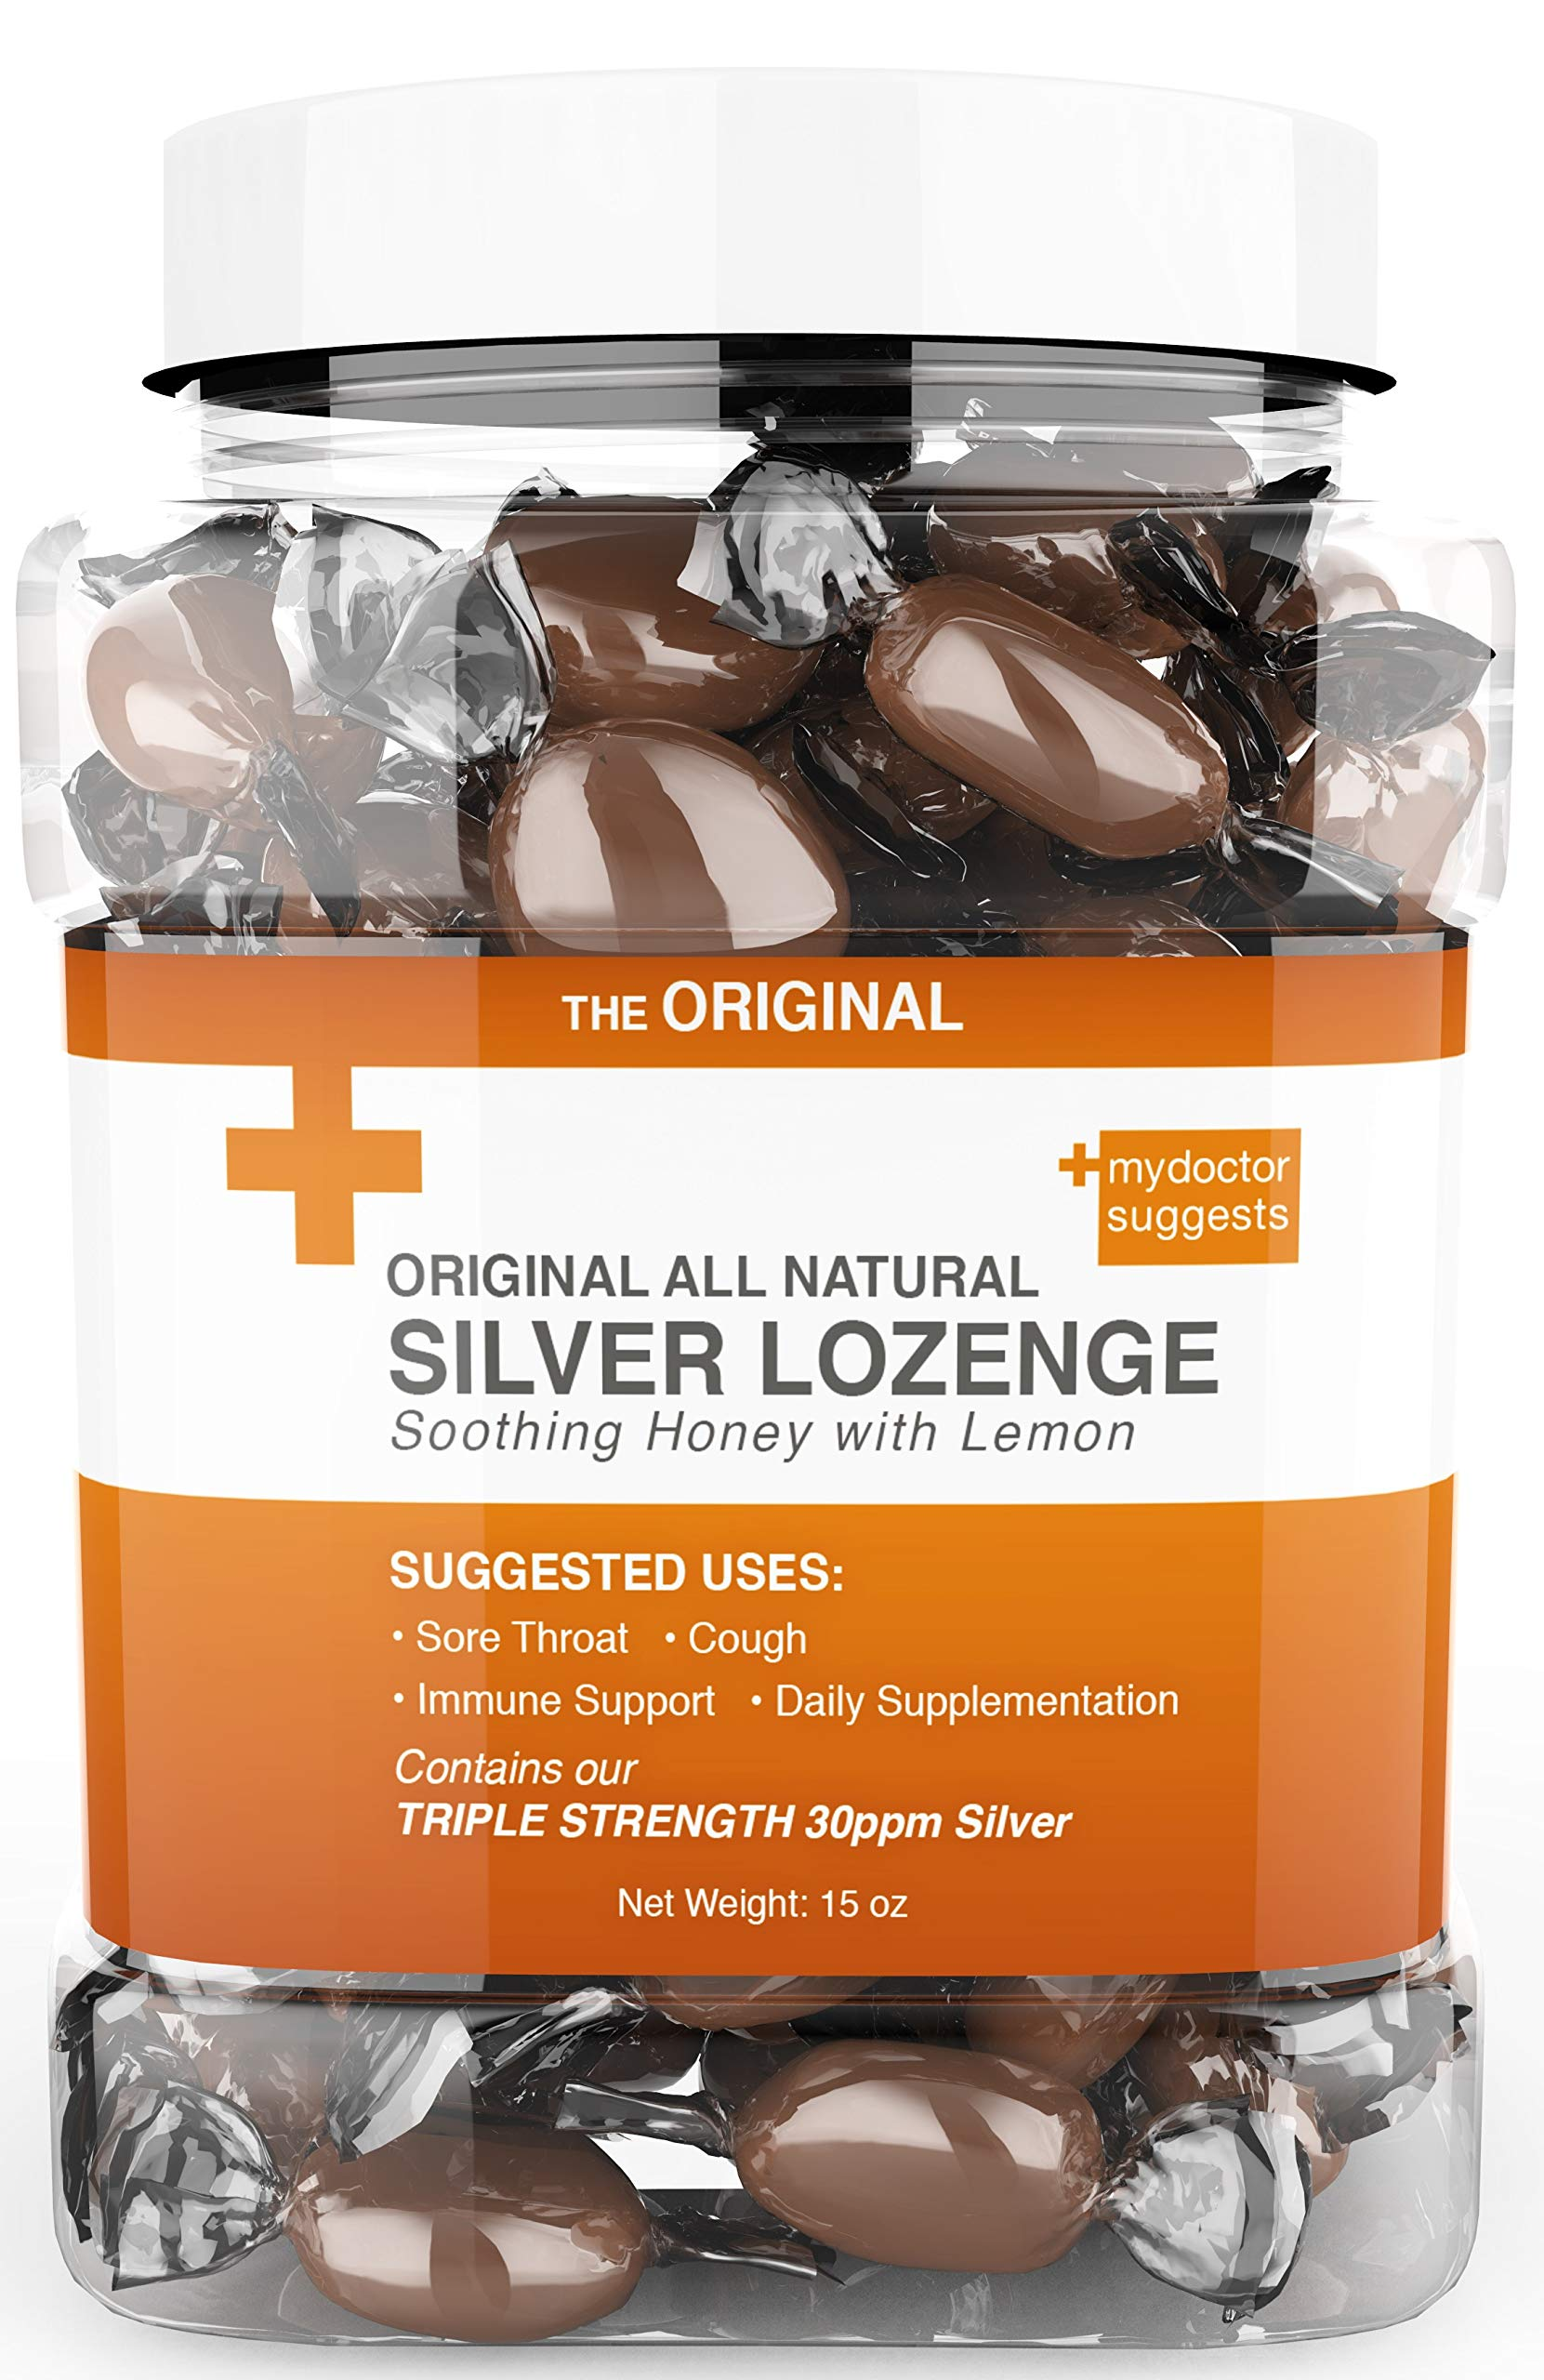 Original All Natural Silver Lozenges - Soothing Honey with Lemon: The Perfect Cough Drop for Cough, Throat & Mouth Health or Even Daily Supplementation & Immune Support, Contains 30ppm Silver by My Doctor Suggests